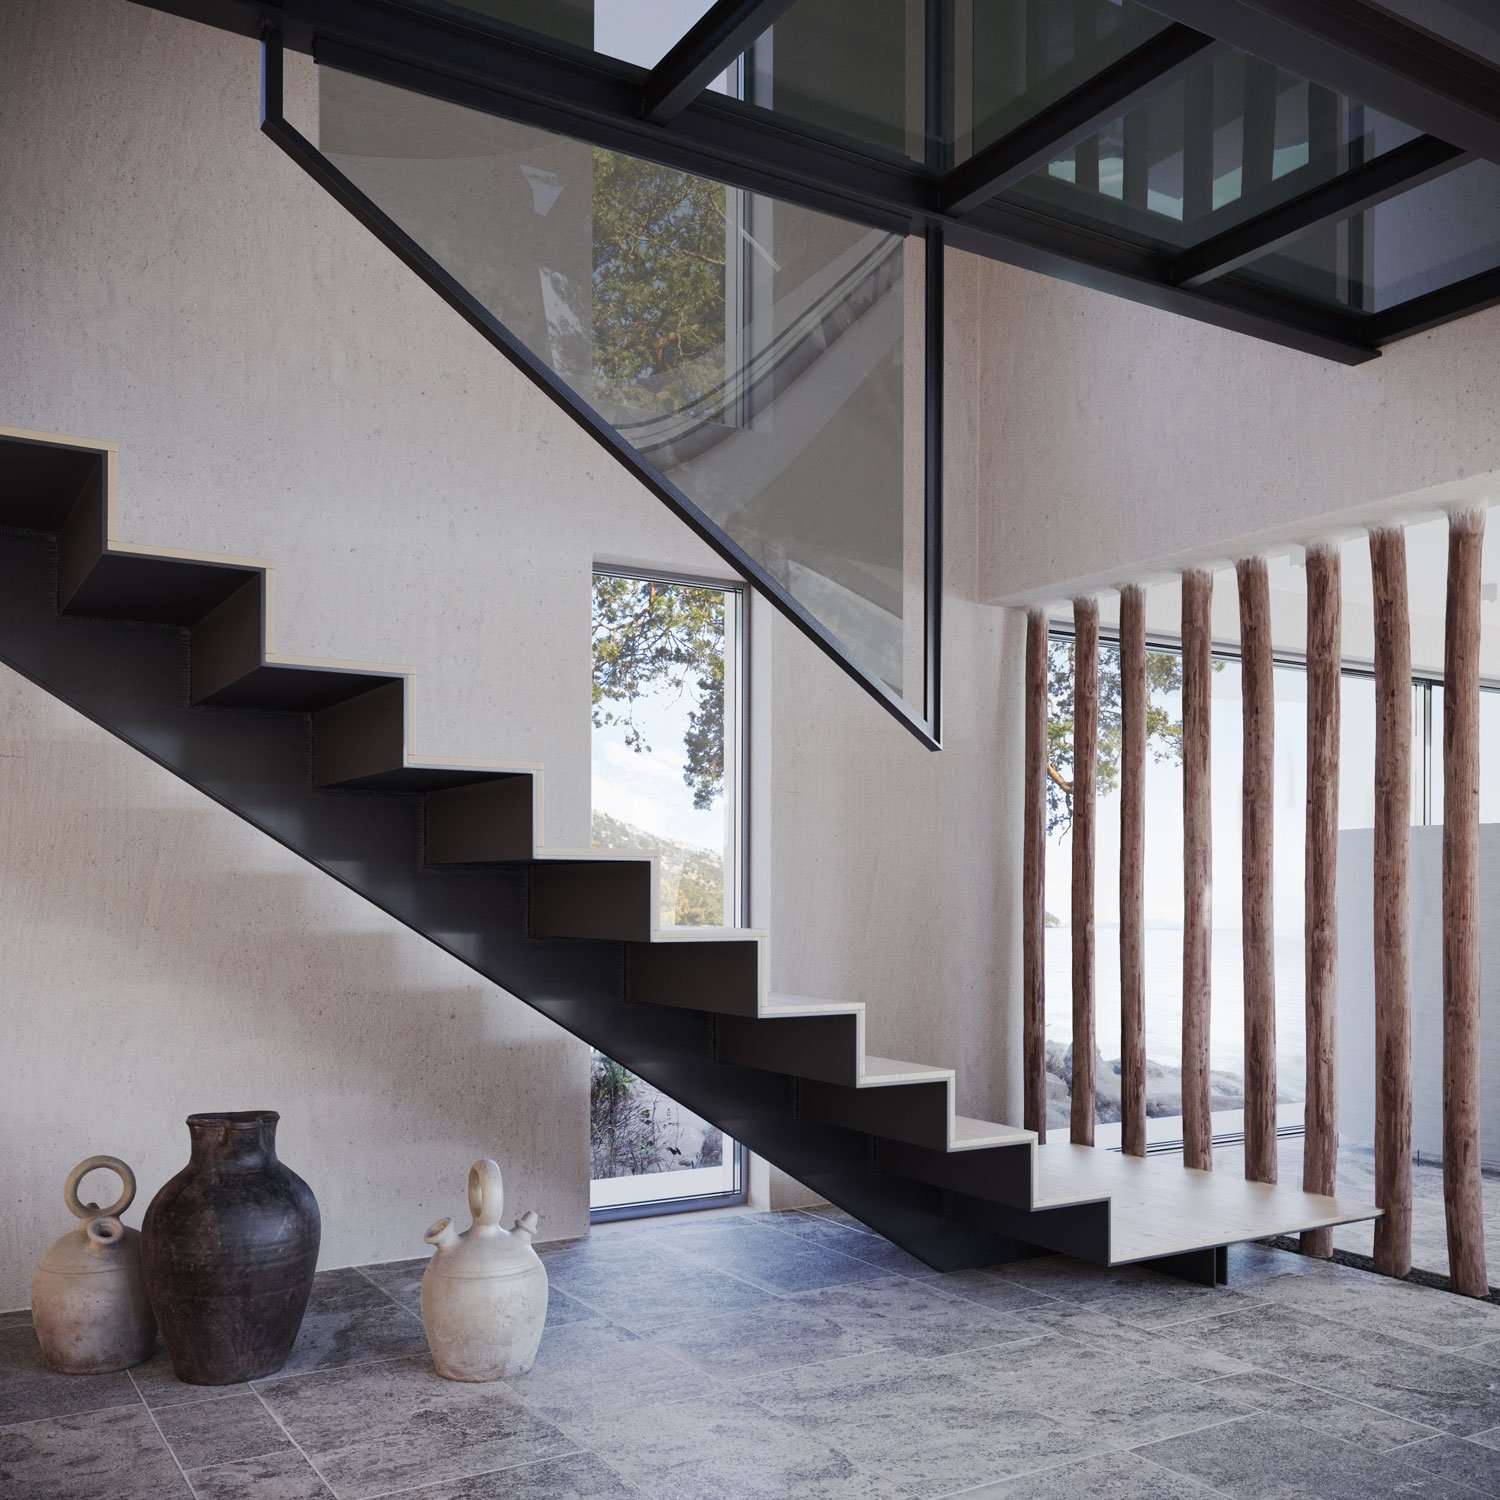 CG Visualization for Elegant Stairs